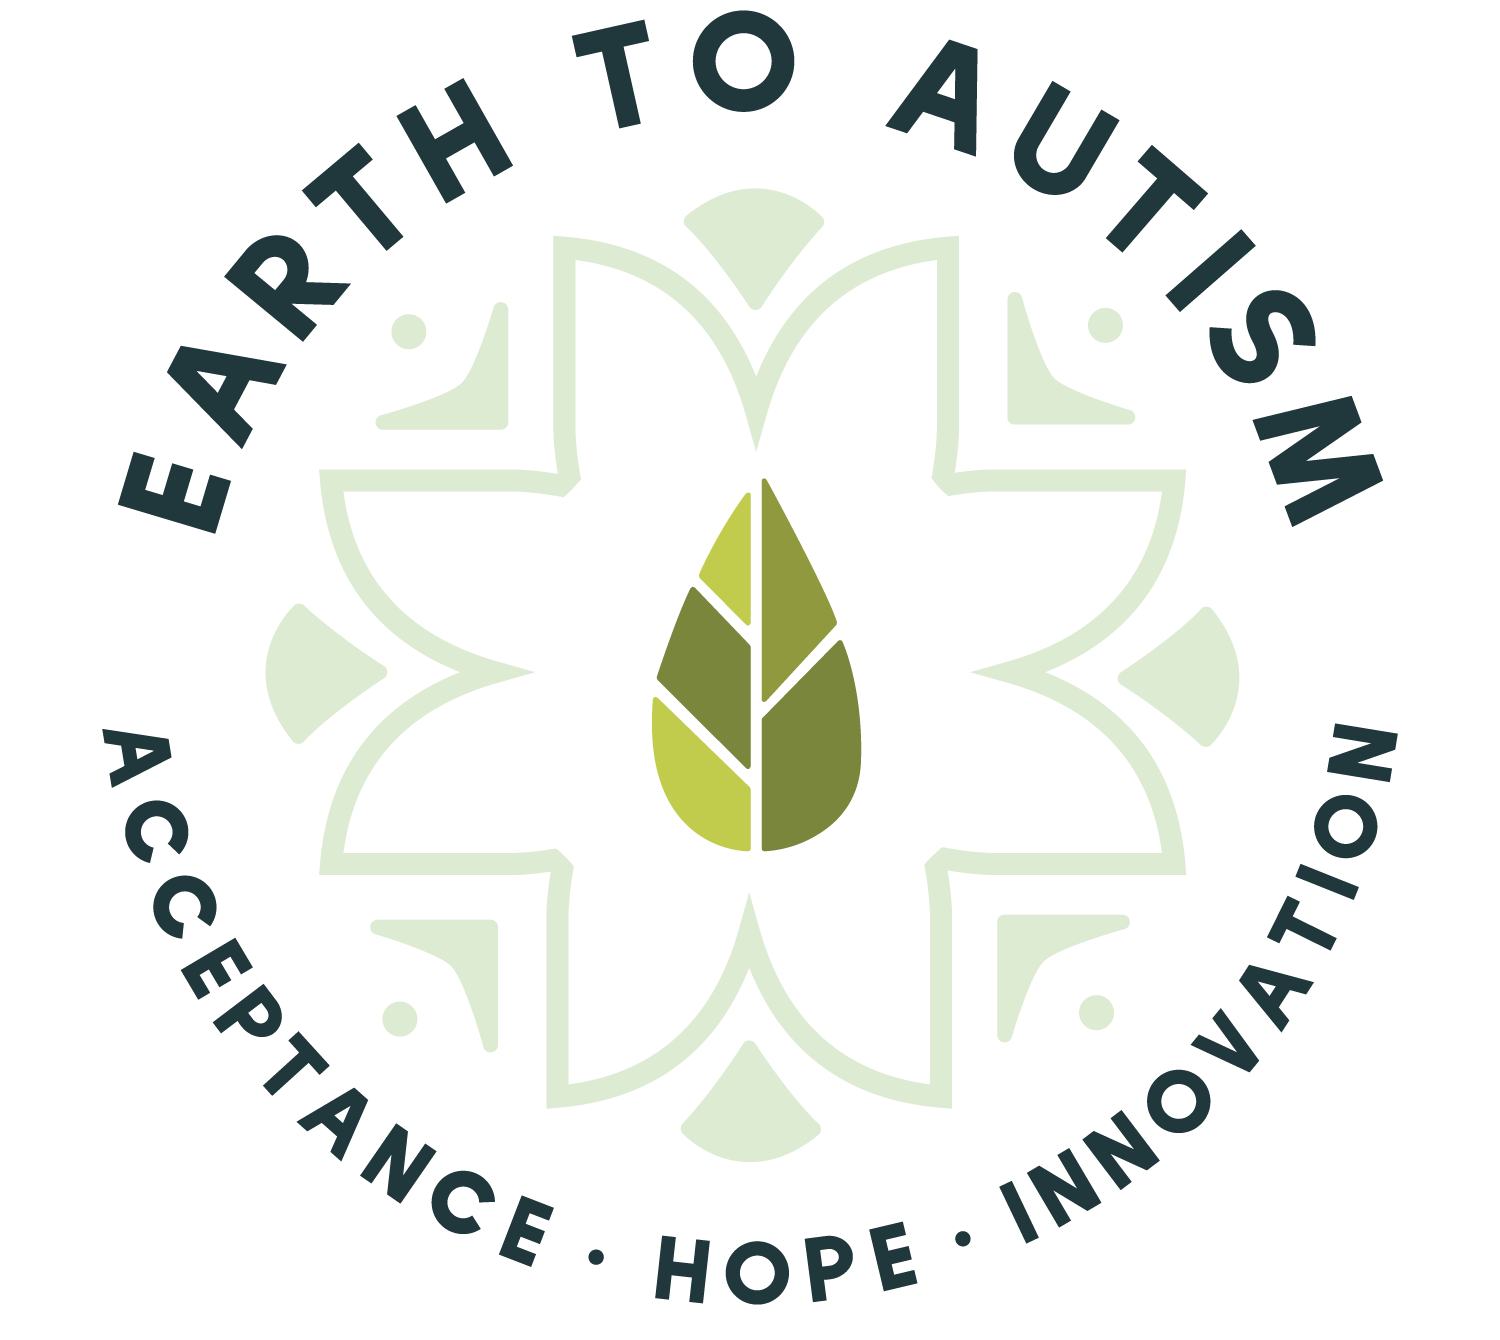 Earth to Autism